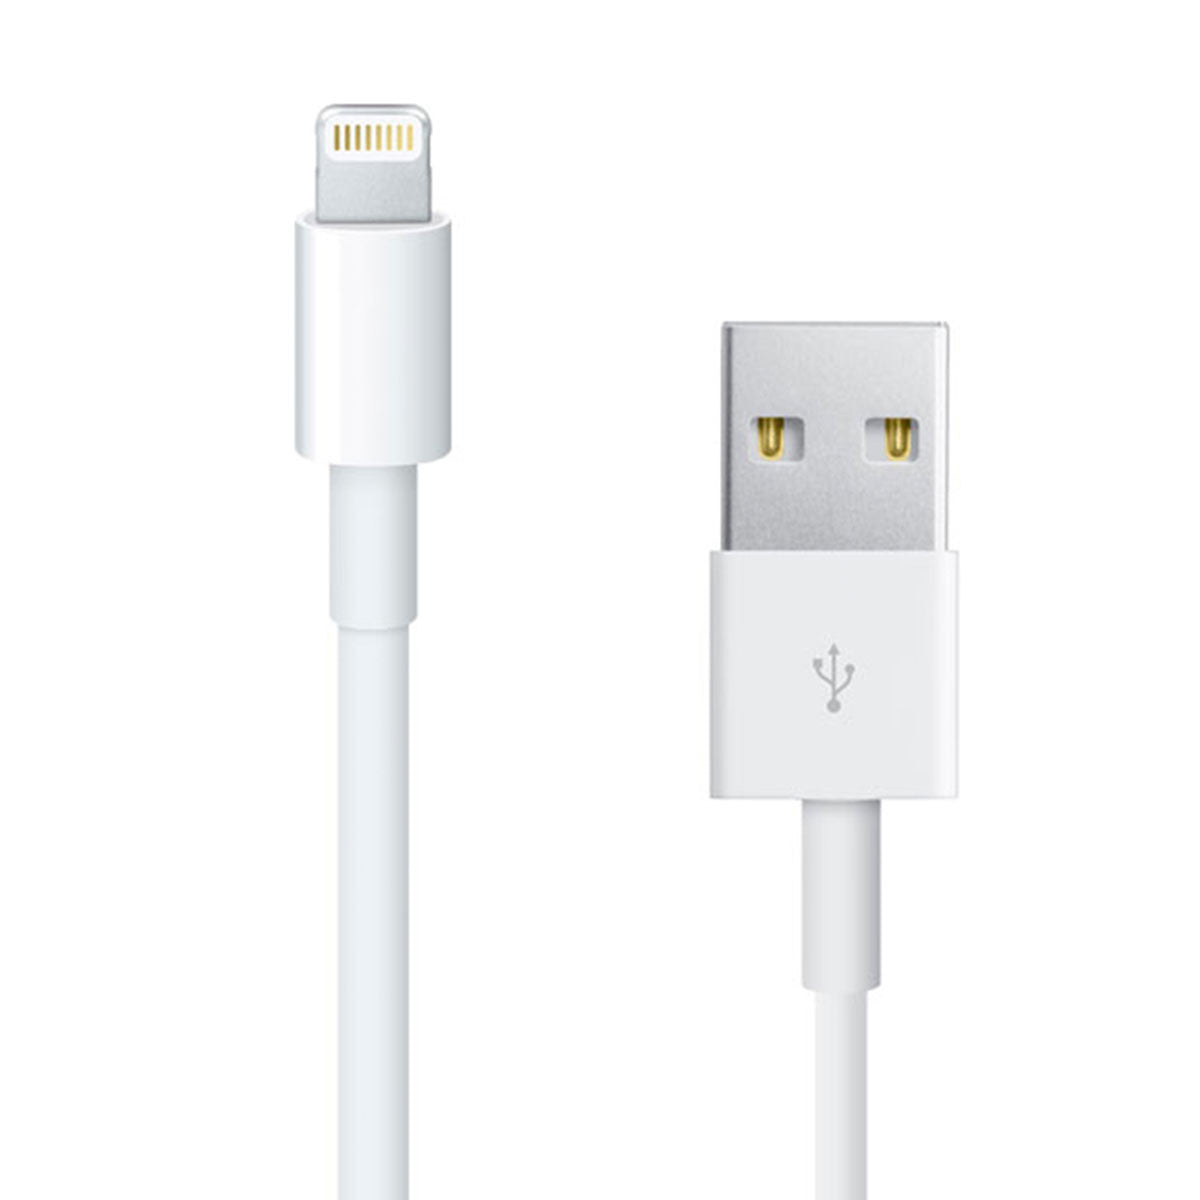 apple ipad iphone charger cable lightning cable to usb replacement mobile mob. Black Bedroom Furniture Sets. Home Design Ideas